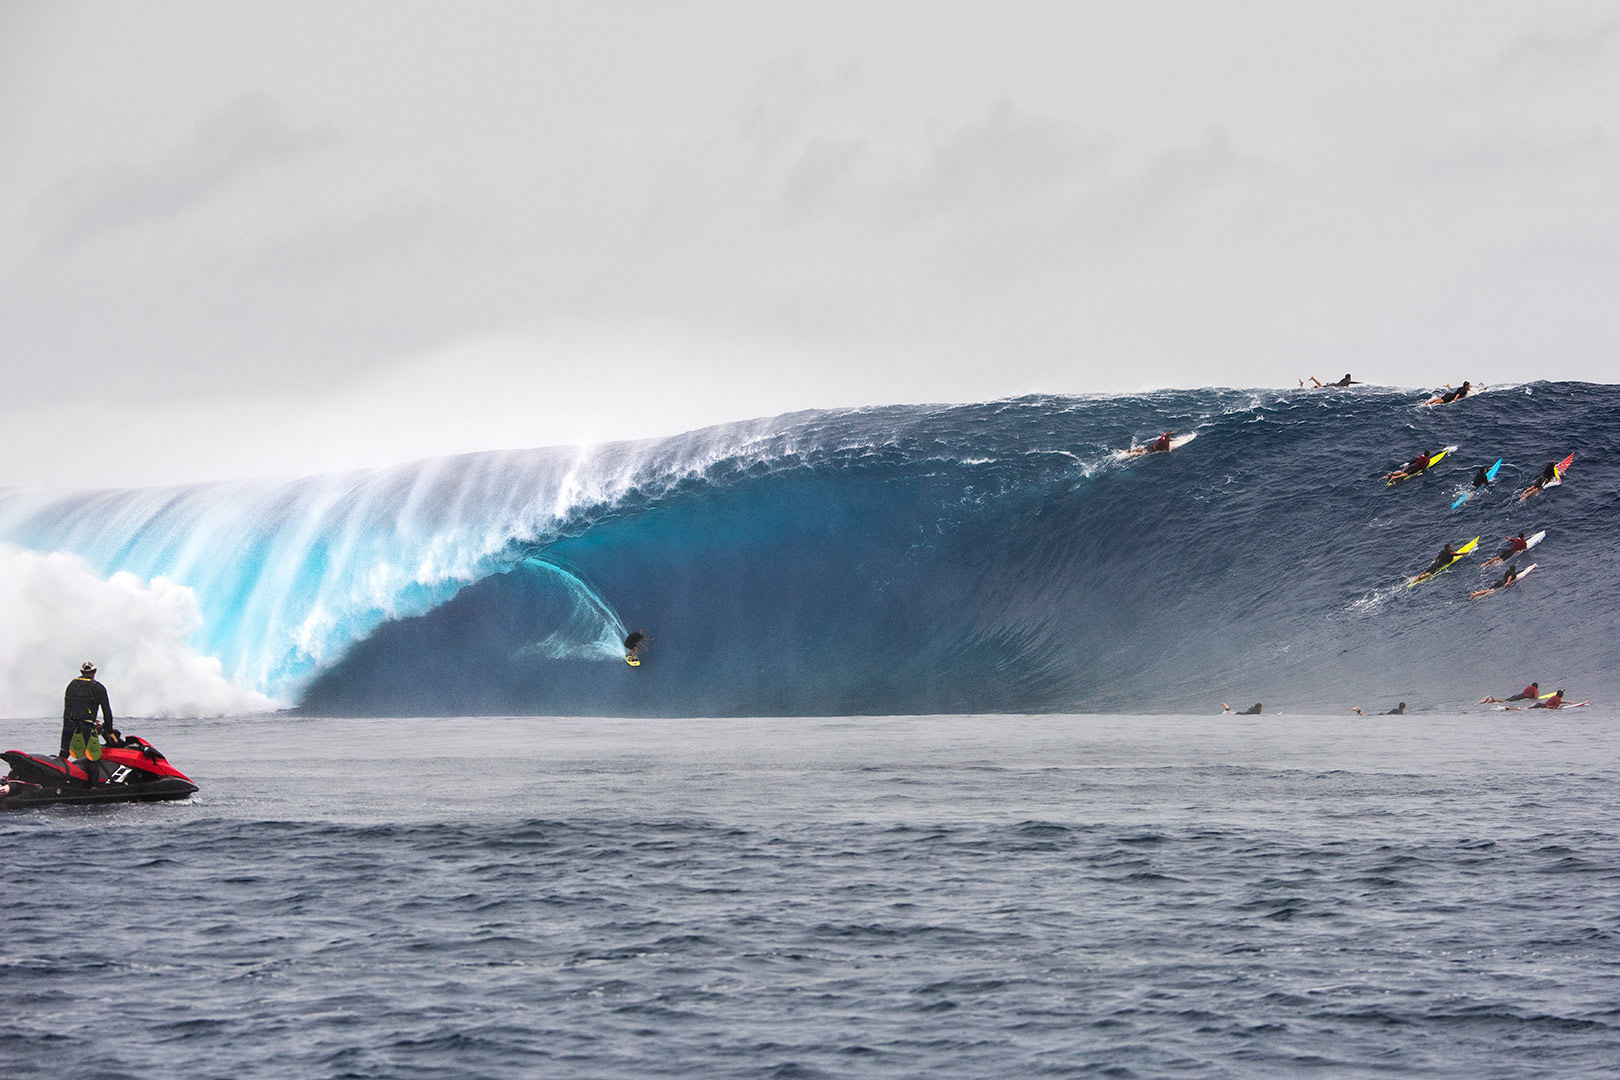 SURFING HISTORY: The biggest wave ever ridden at Cloudbreak, FIJI - Ramon Navarro.